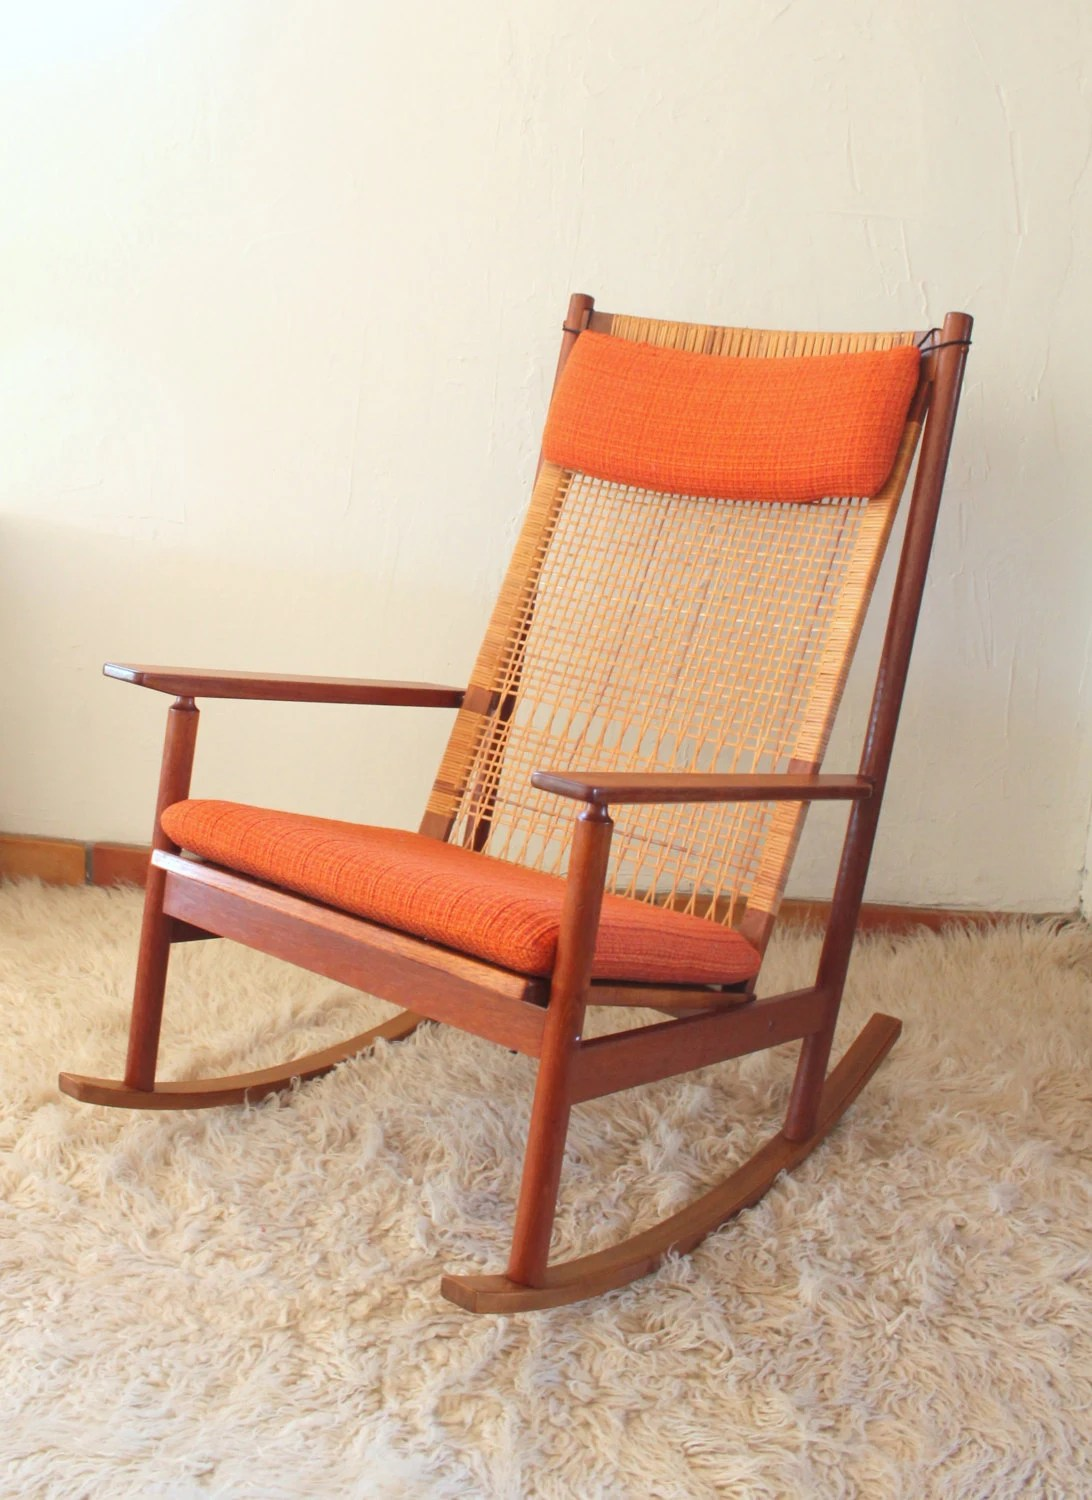 how to make a rocking chair not rock cafe style table and chairs r e s v d hans olsen